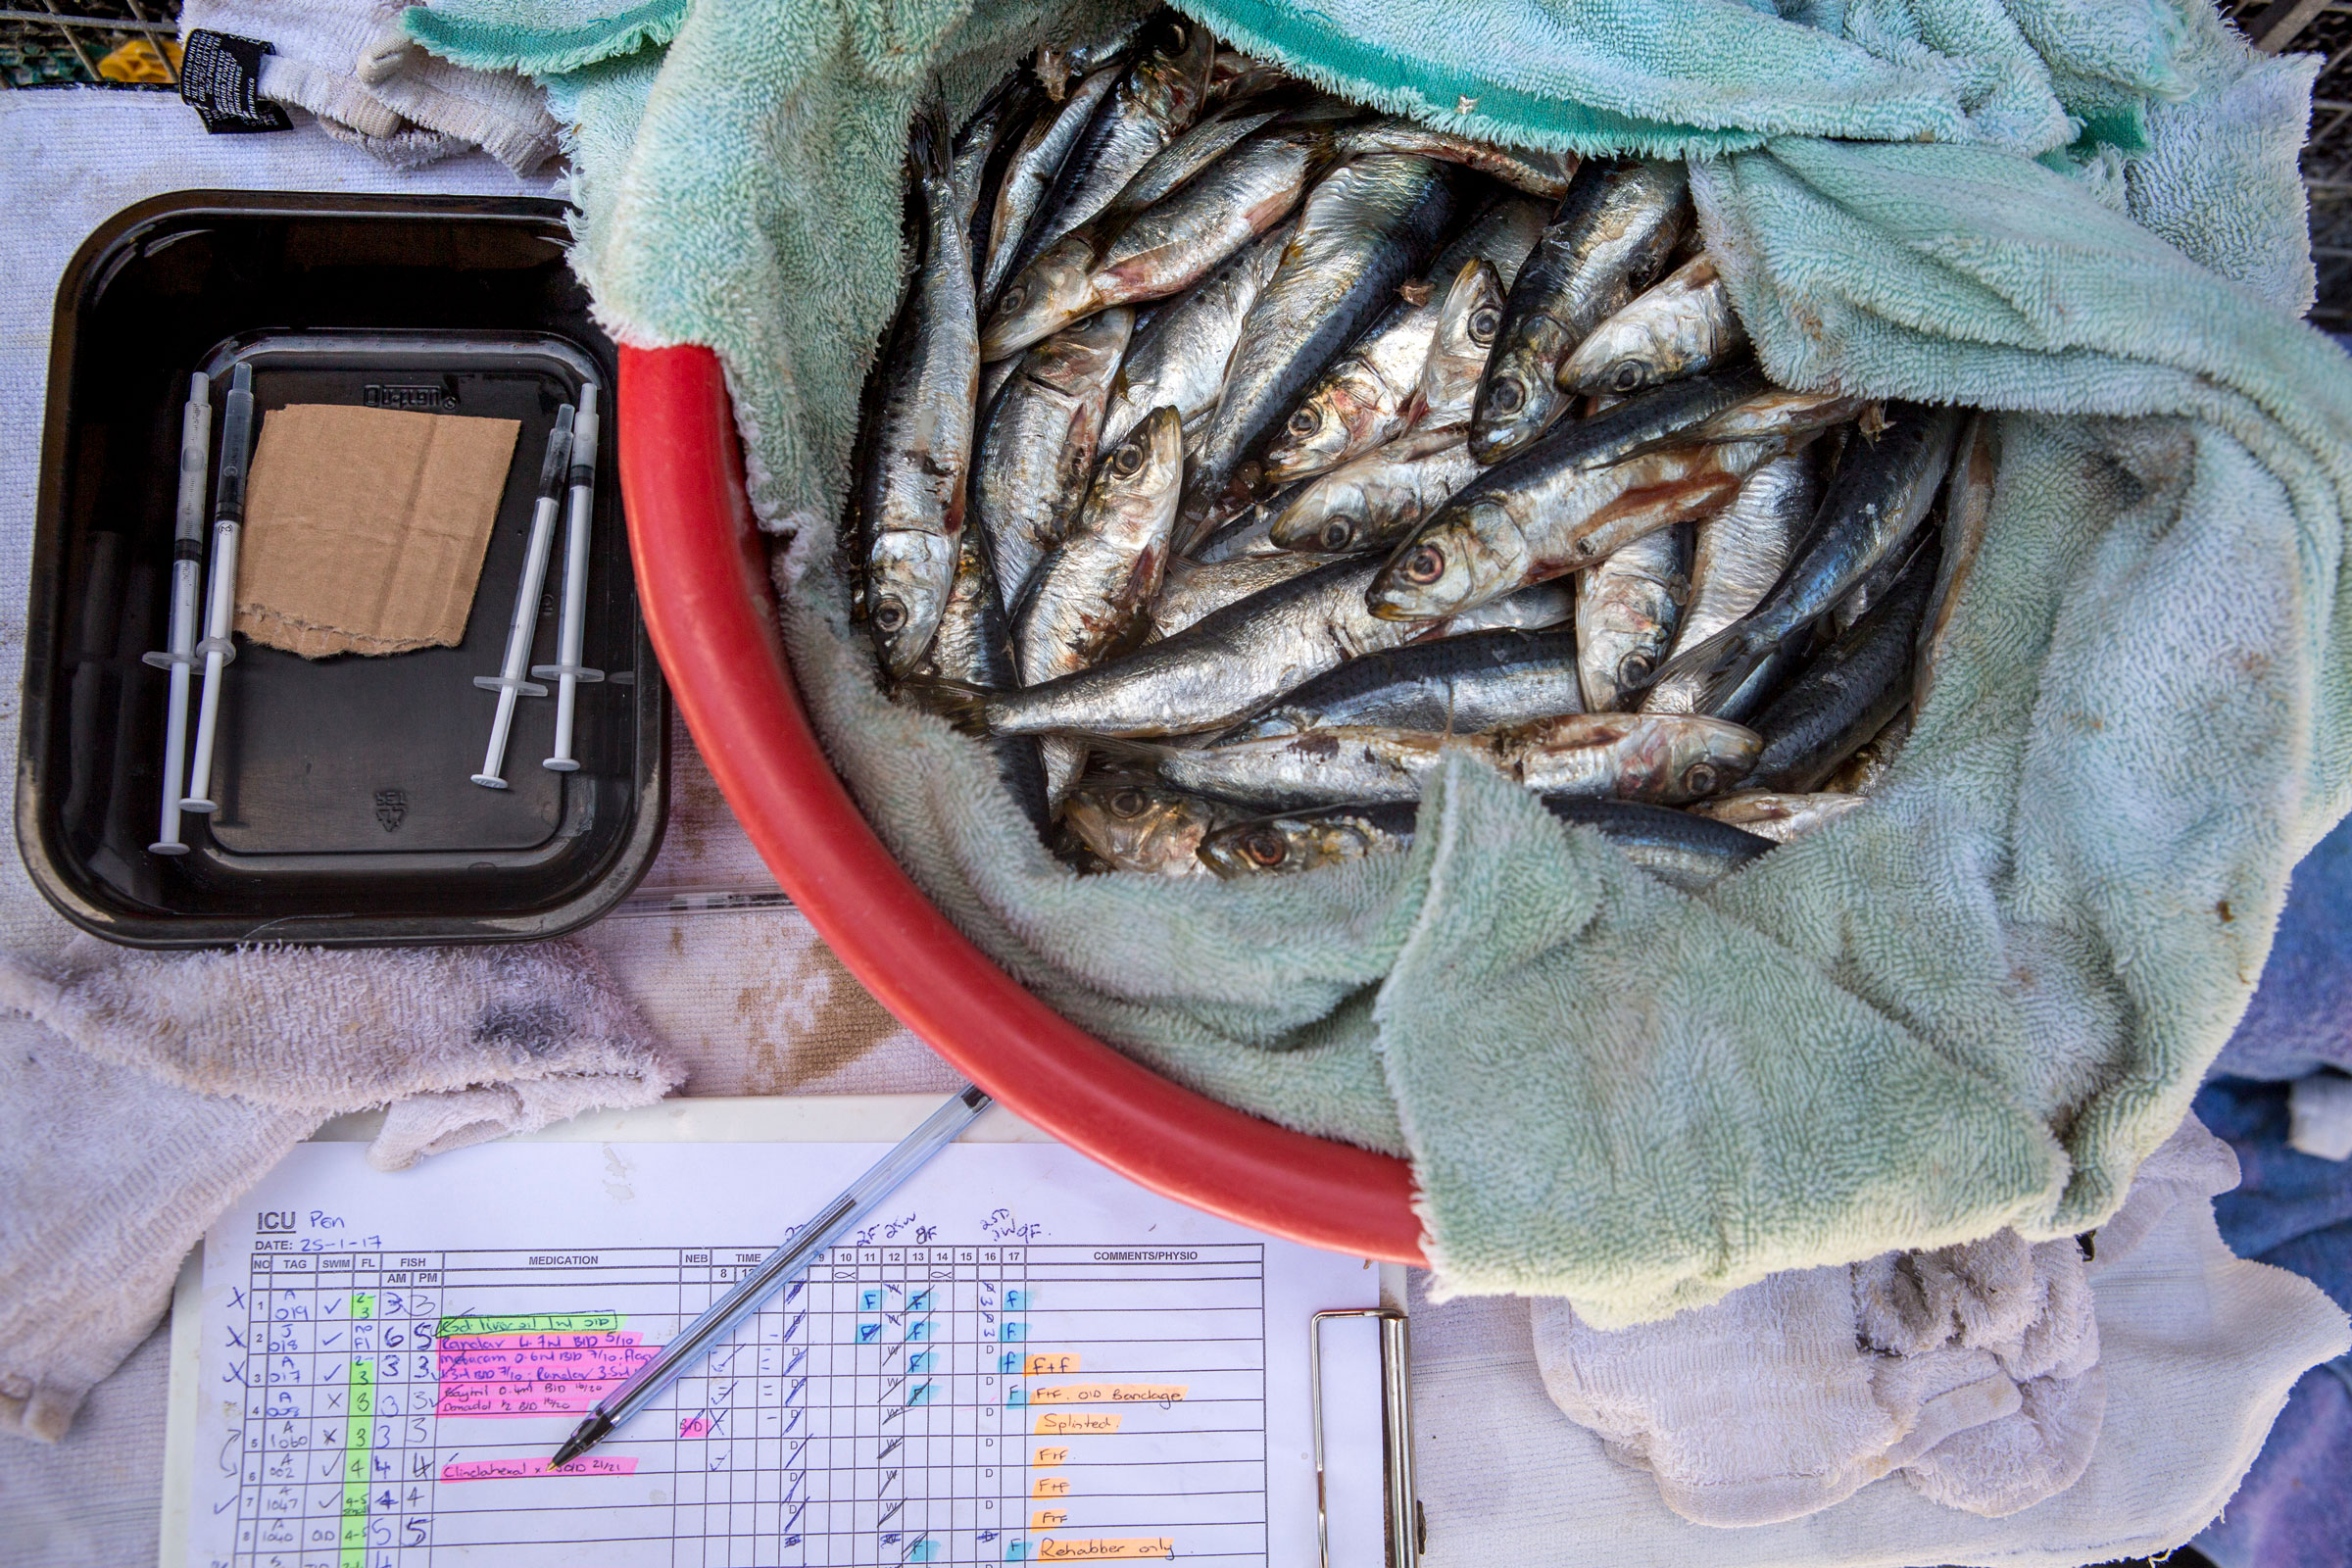 A fish breakfast and medicine are laid out for the penguins being treated for injuries at SANCCOB. Alexia Webster